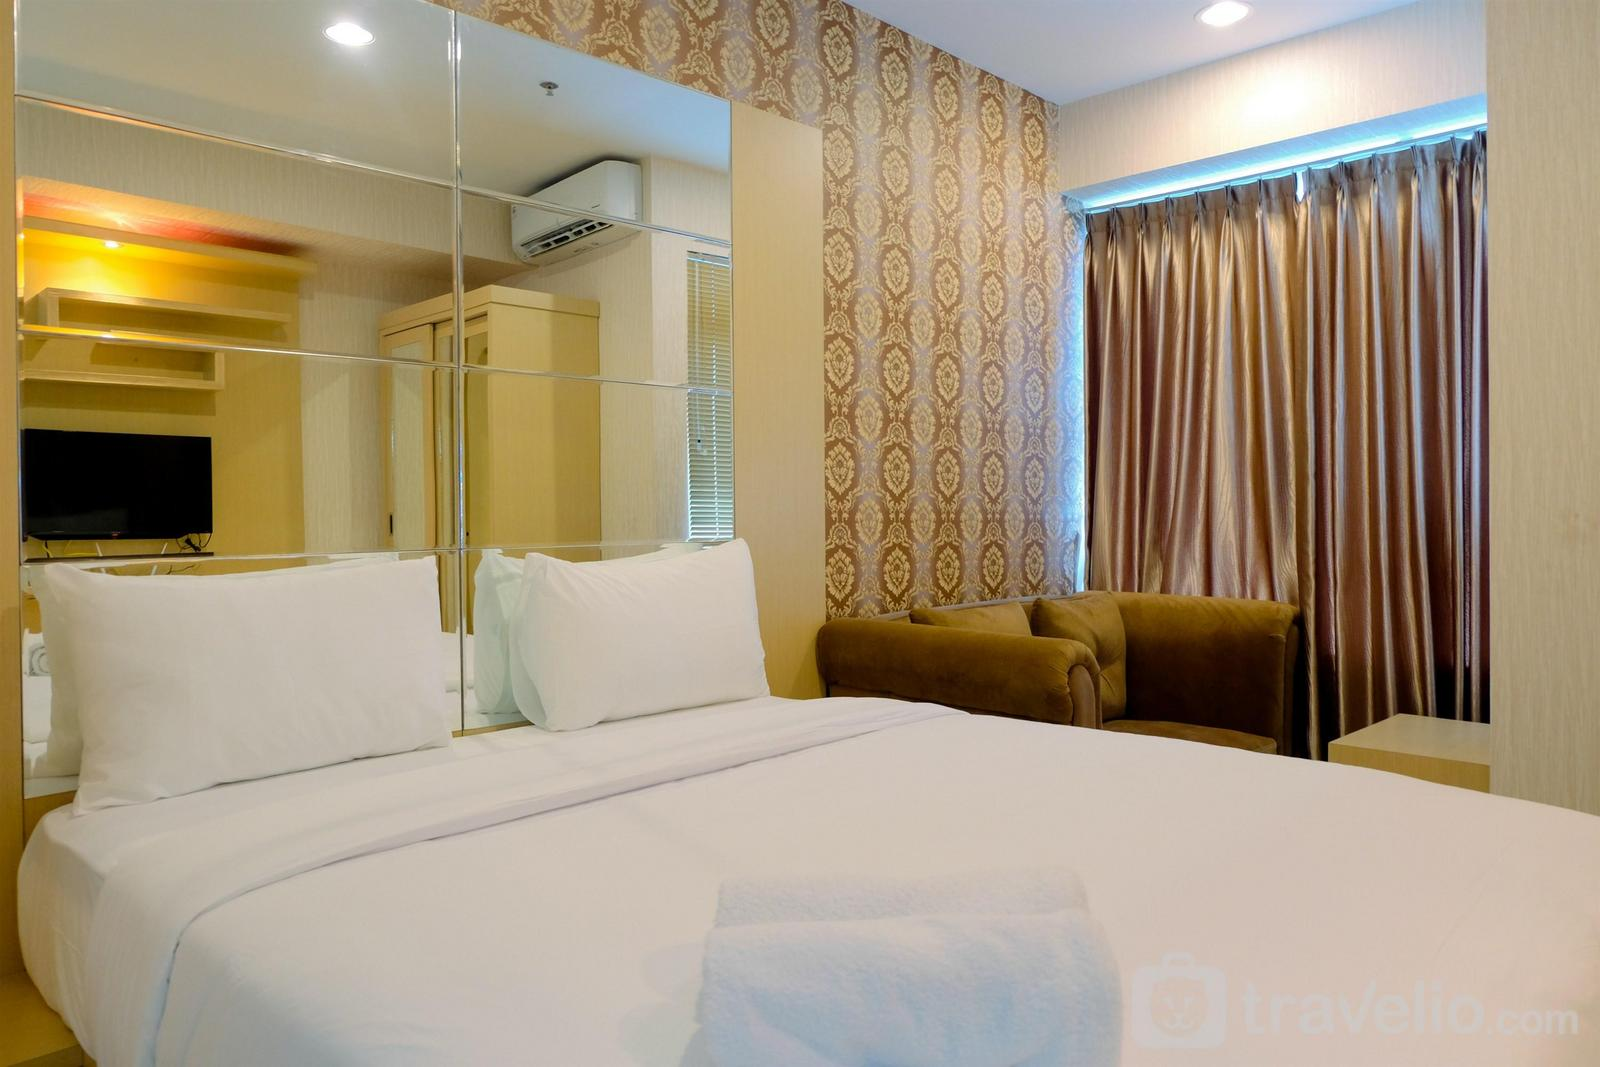 Grand Kamala Lagoon - Homey Studio Apartment at Grand Kamala Lagoon By Travelio